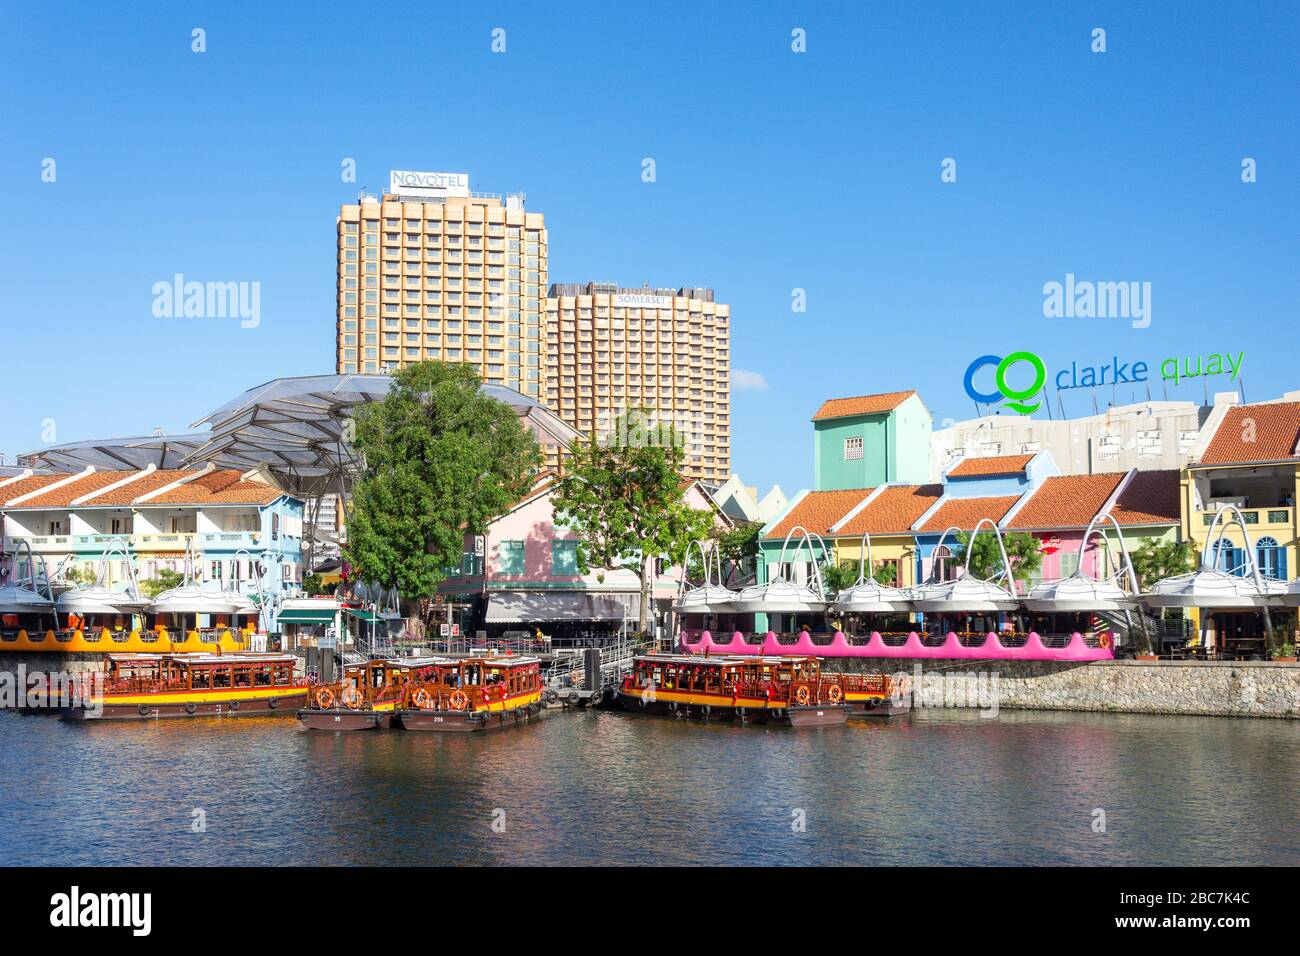 River cruise boats on Singapore River, Clarke Quay, Central Area, Singapore Stock Photo